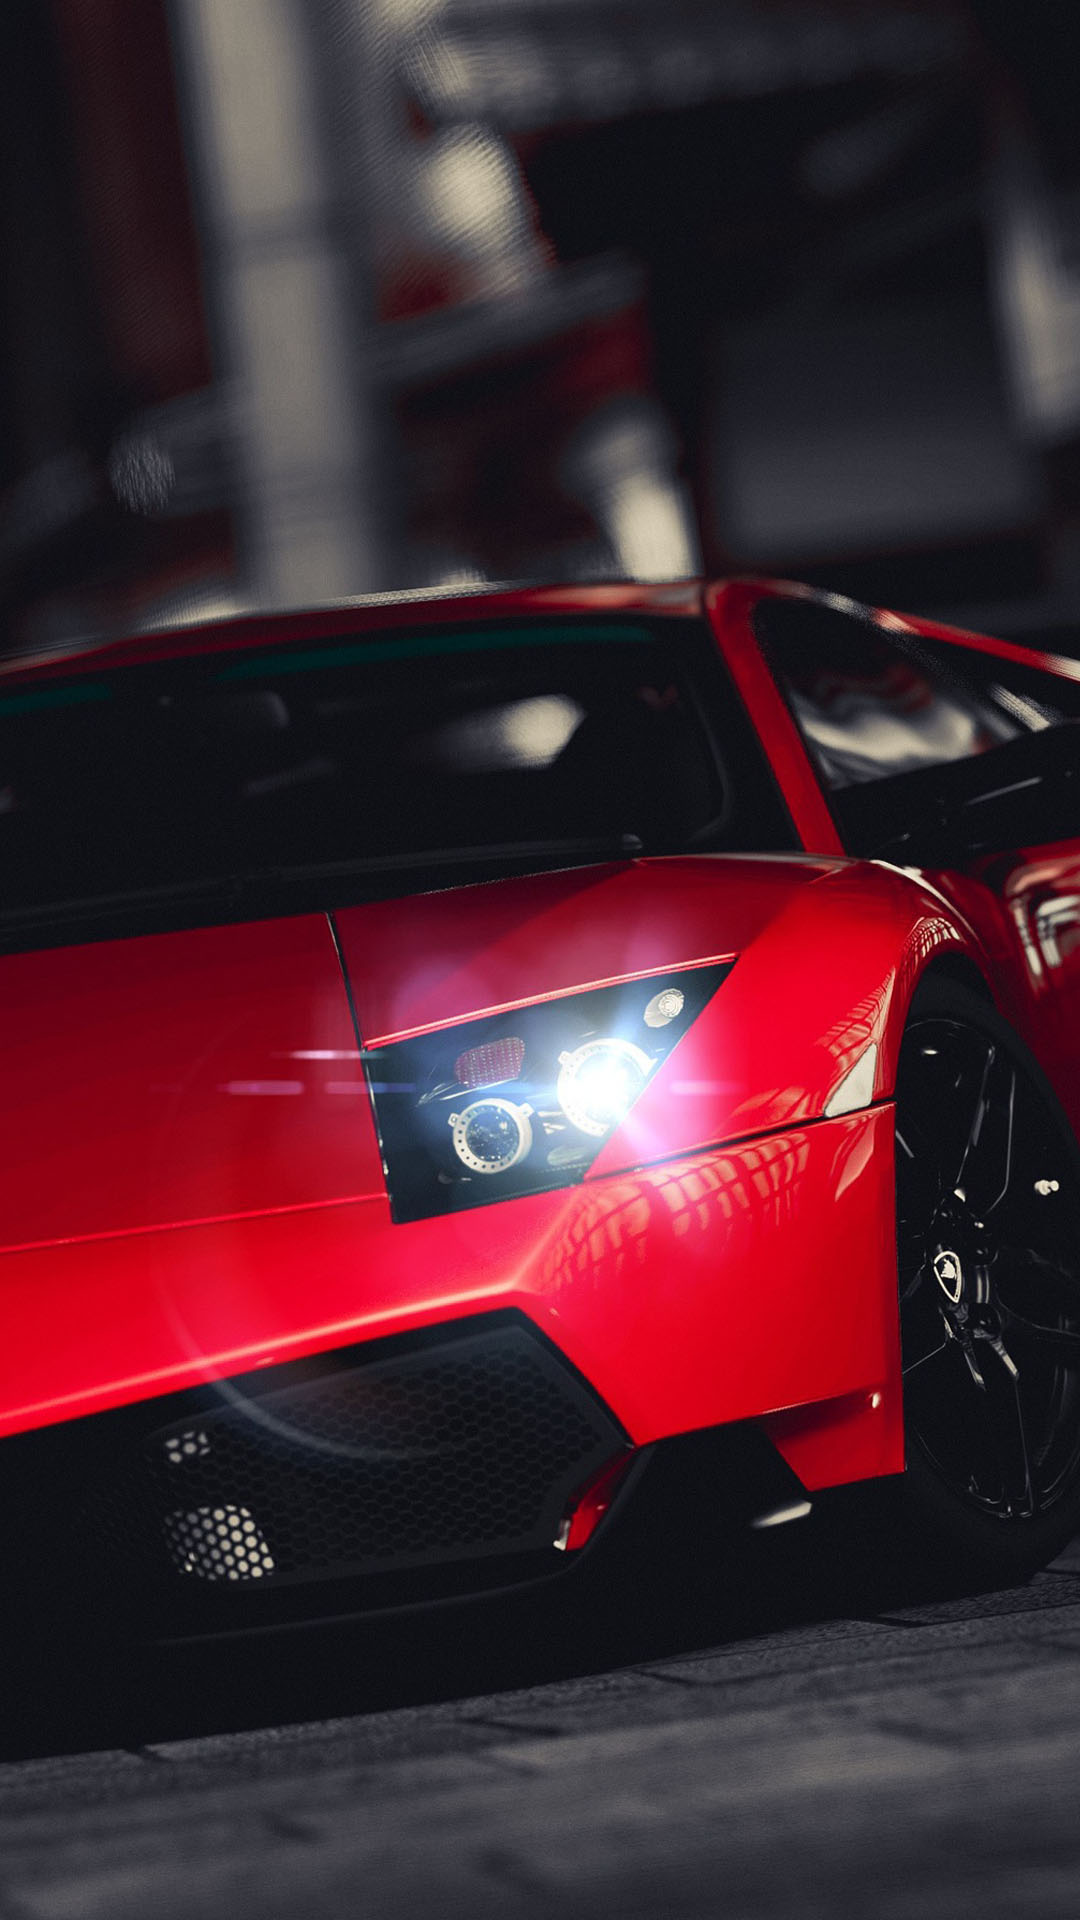 Red Lamborghini Murcielago Superveloce htc one wallpaper